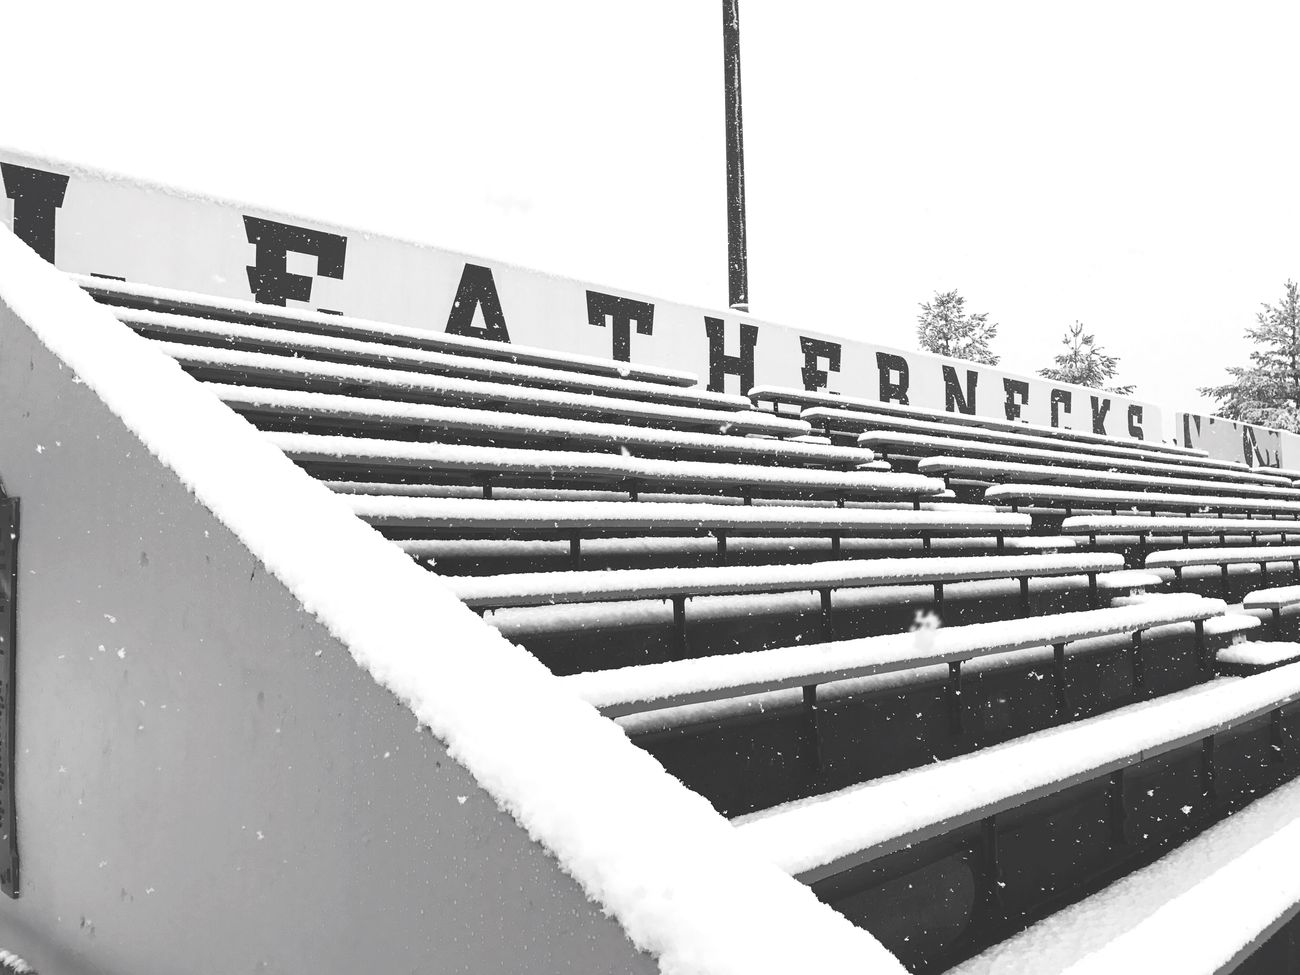 Day Built Structure Outdoors No People Sky Architecture WIU Leathernecks Football Stadium Bleachers Snow Football College Campus Off Season Winter Rocky